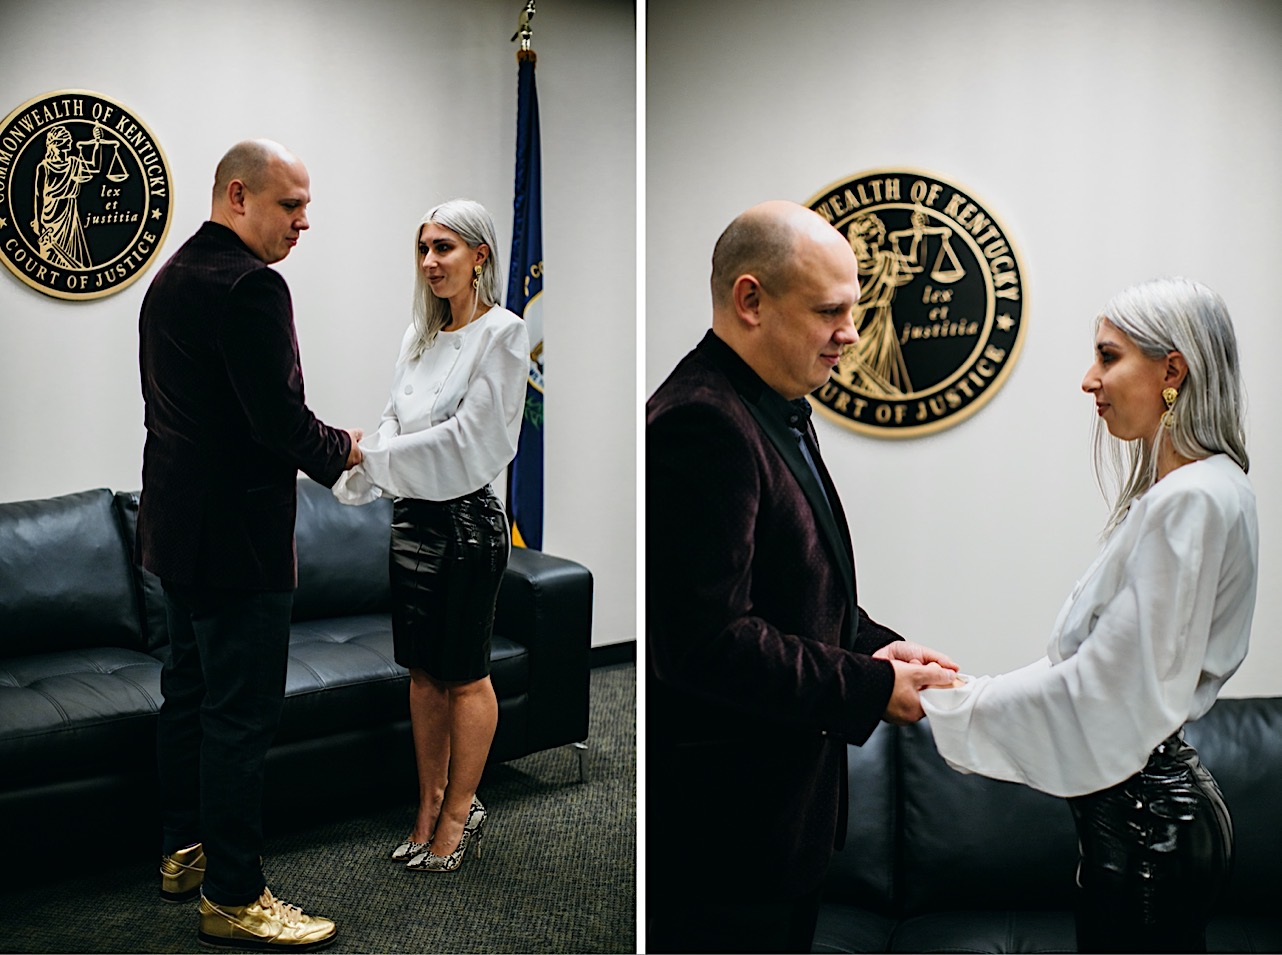 Halloween elopement at the court house where bride and groom read their vows